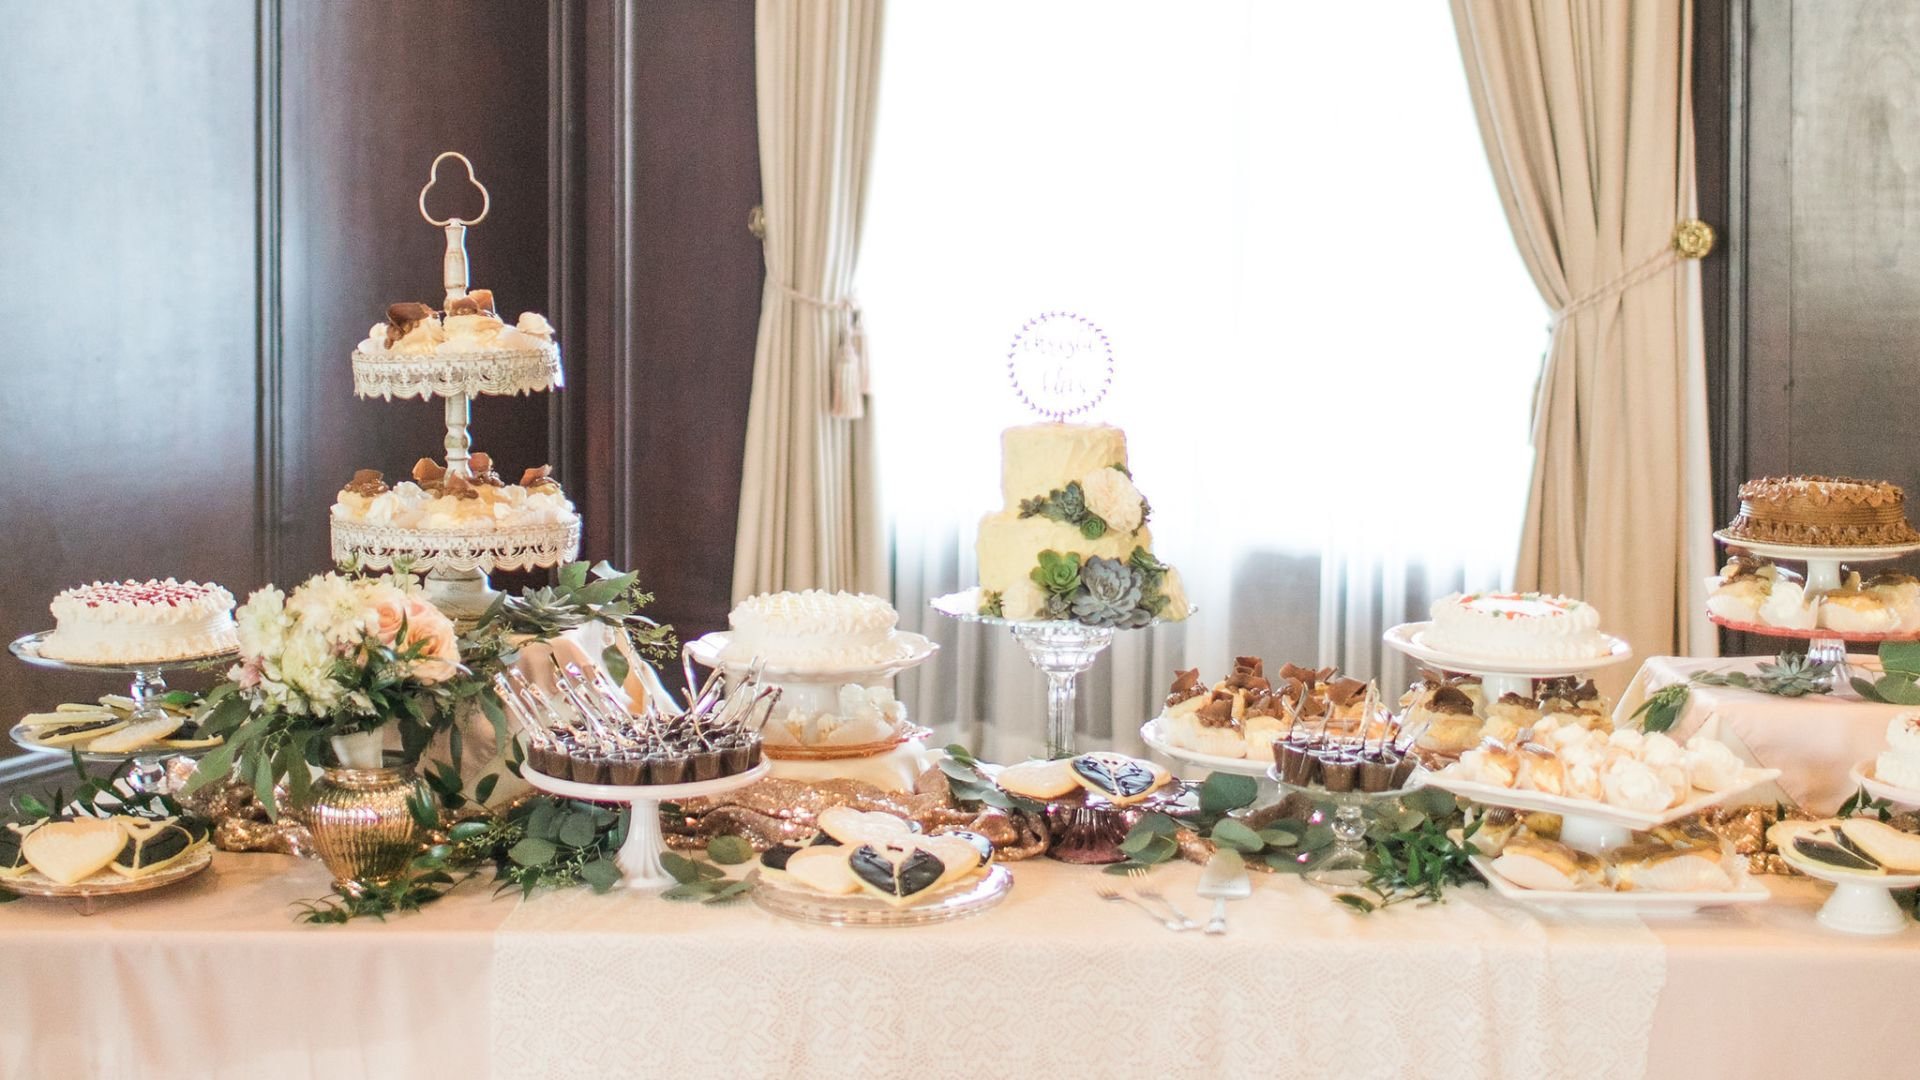 wedding dessert table at Paso Robles Inn wedding venue